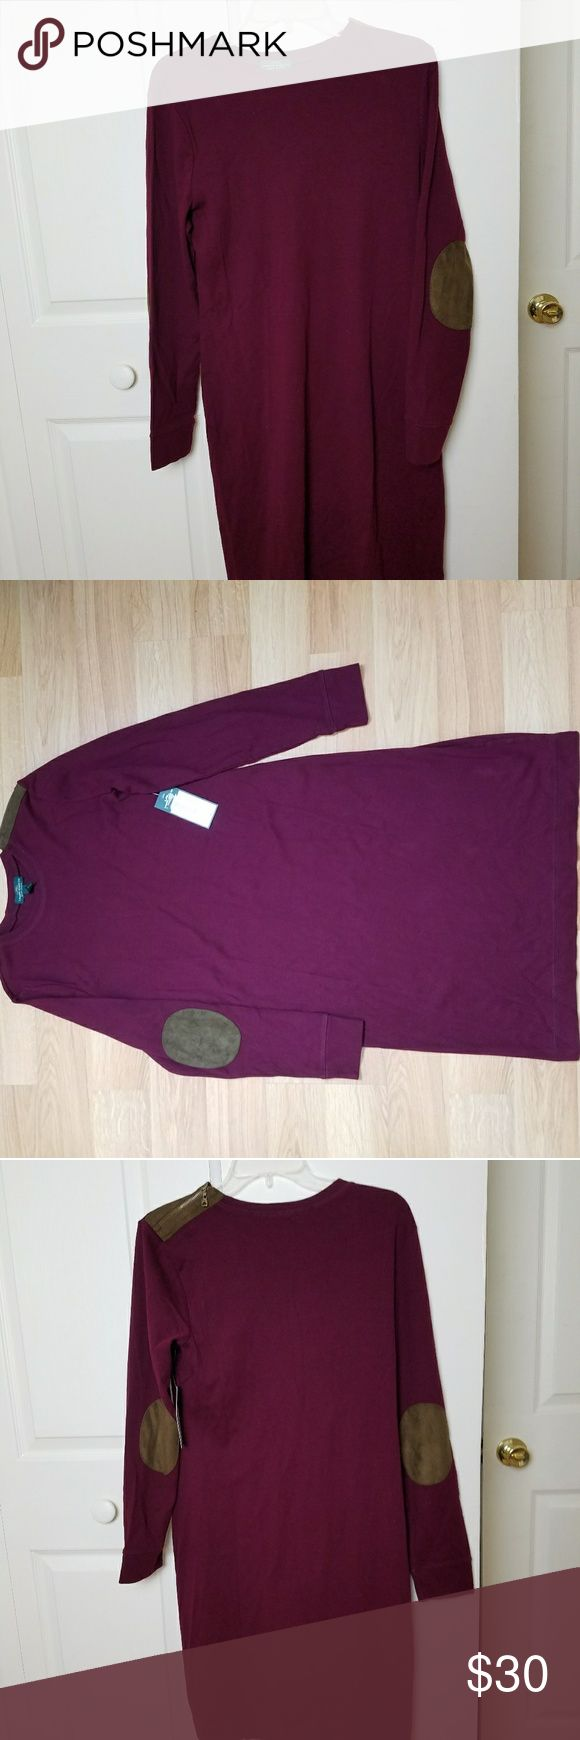 NWT Ralph Laurn Jeans Co Maroon Dress Large Has elbow pads and a shoulder zip detail.  Short Dress Size Large  Measurements laying flat without stretch in inches:  Pit to pit 18.5 Midsection width 17 Bottom width 20.5 Collar seam to shoulder seam 4.5 Shoulder seam to end of sleeve 23.5 Length 37.5  Please feel free to email any questions that you may have. Ralph Lauren Dresses Long Sleeve